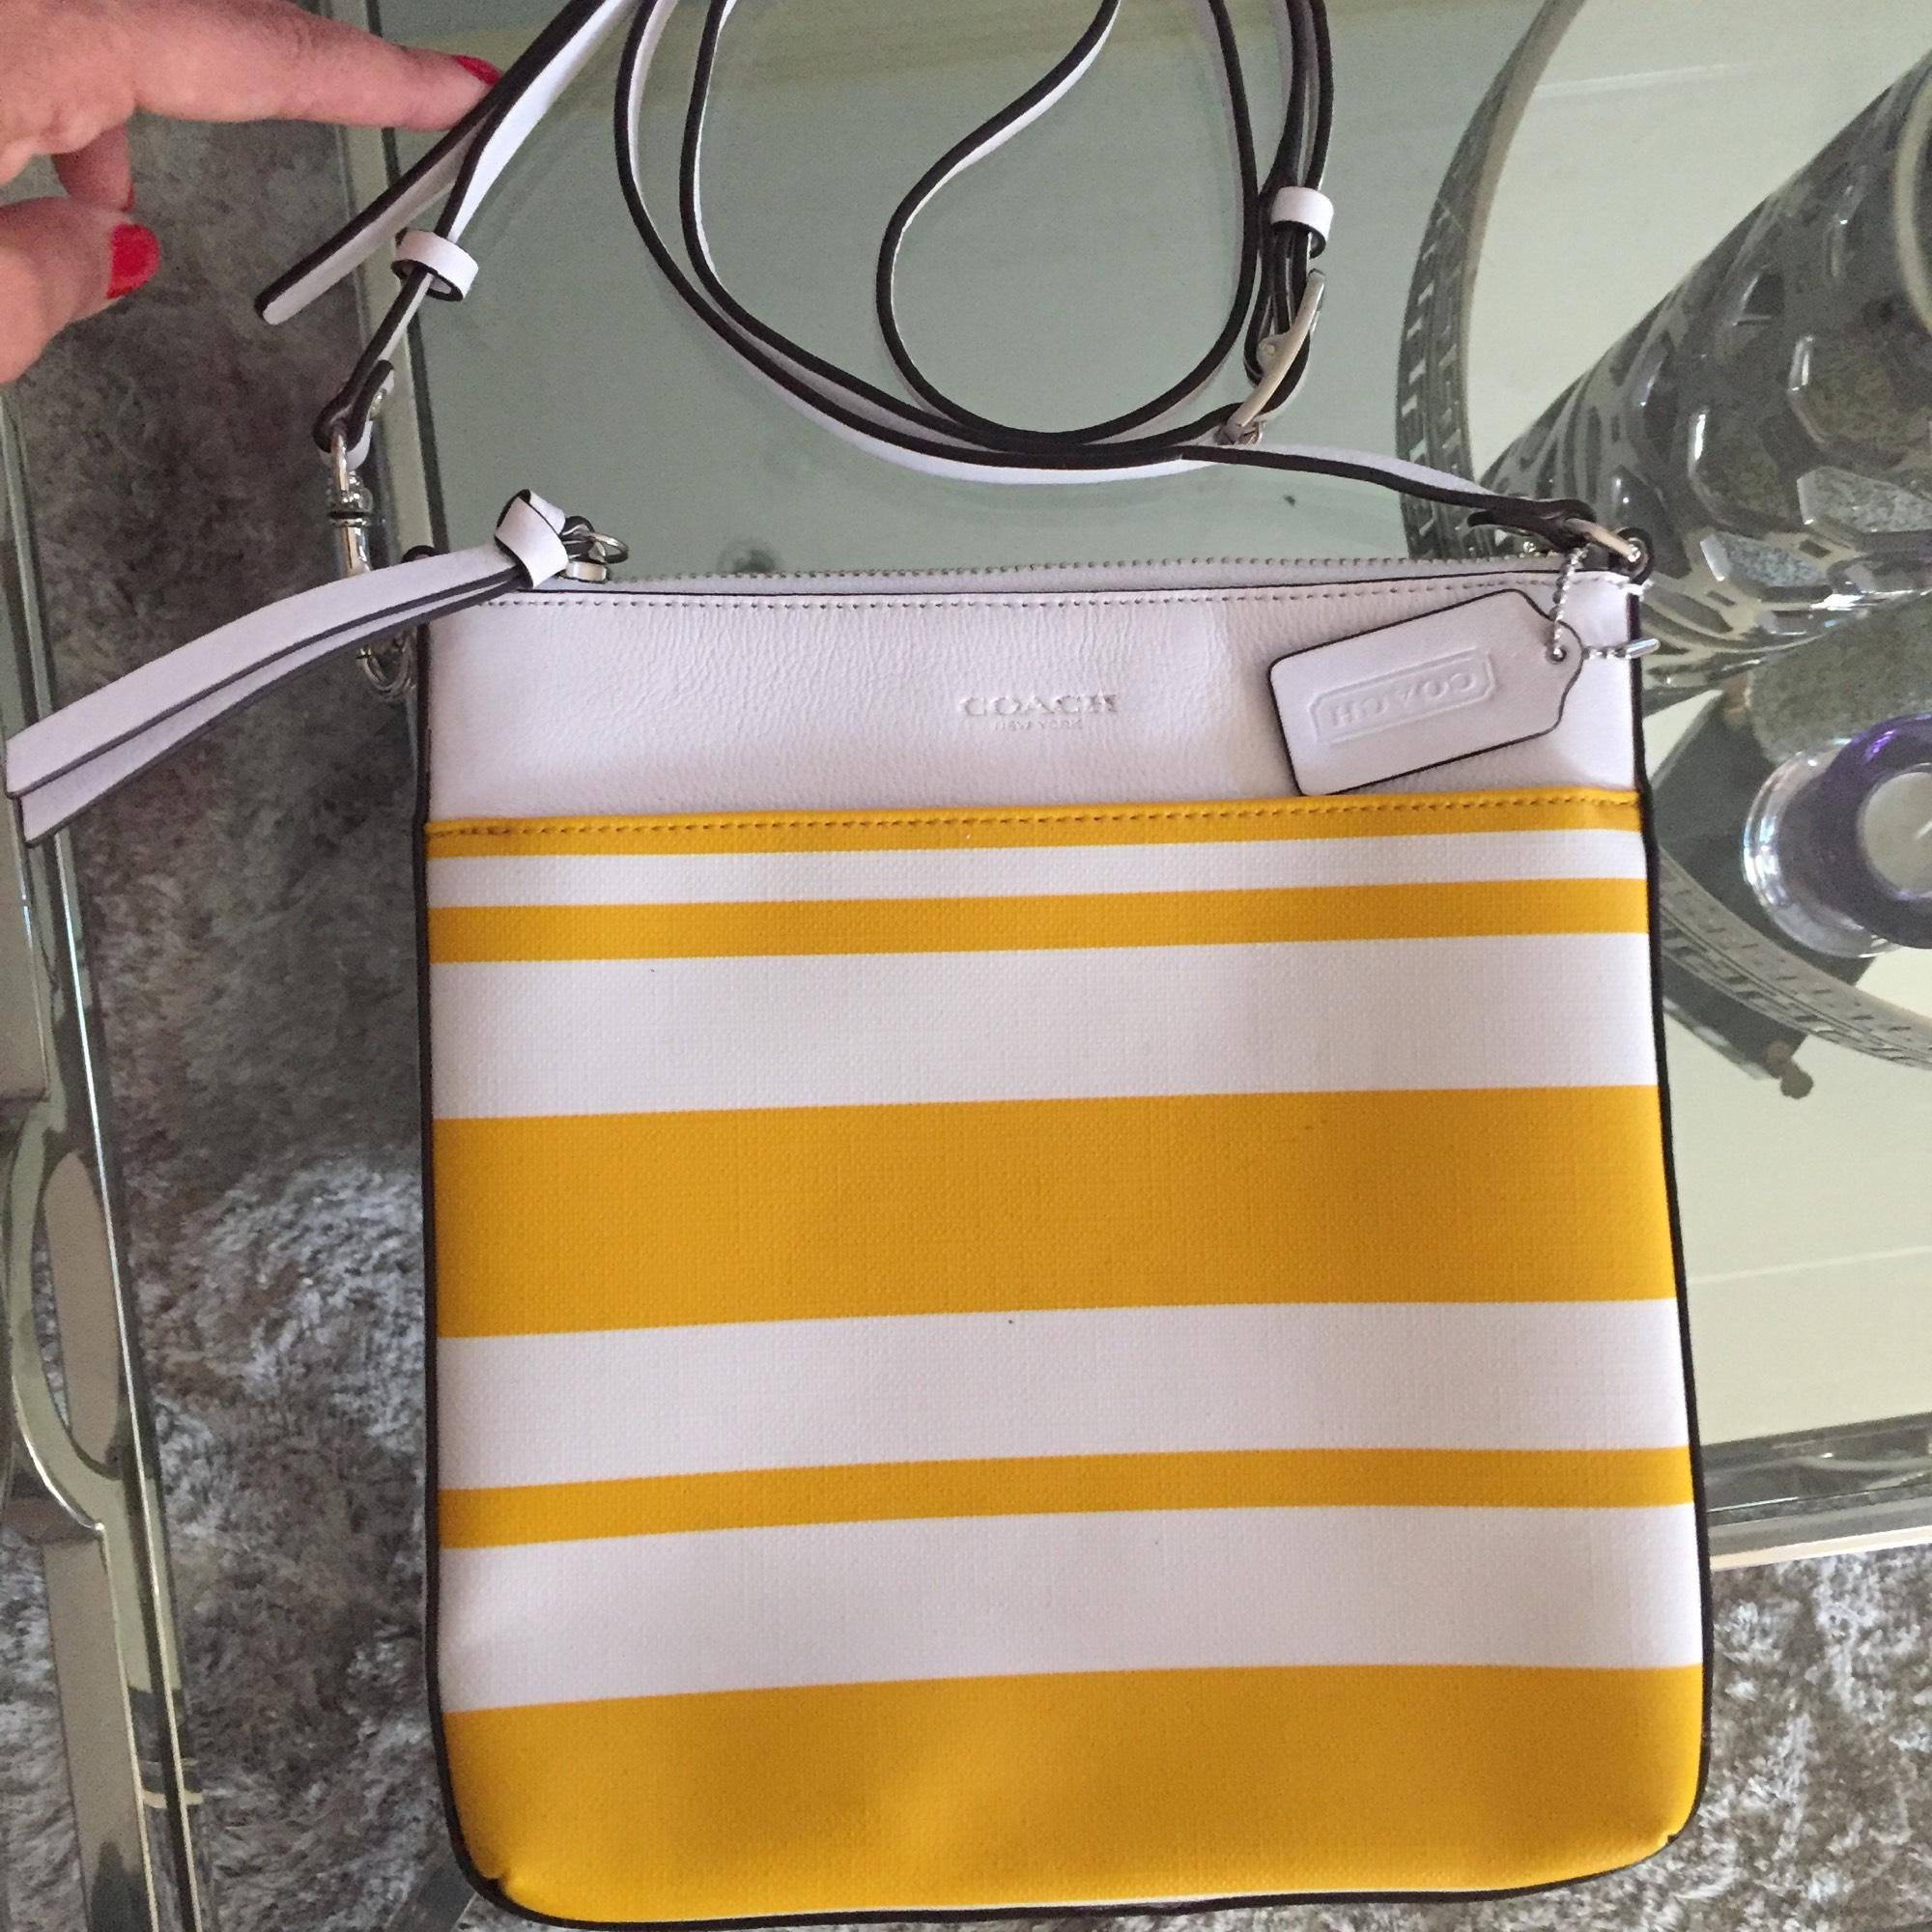 5778a8a5e5 ... australia coach white yellow leather cross body bag tradesy f9ad8 1c673